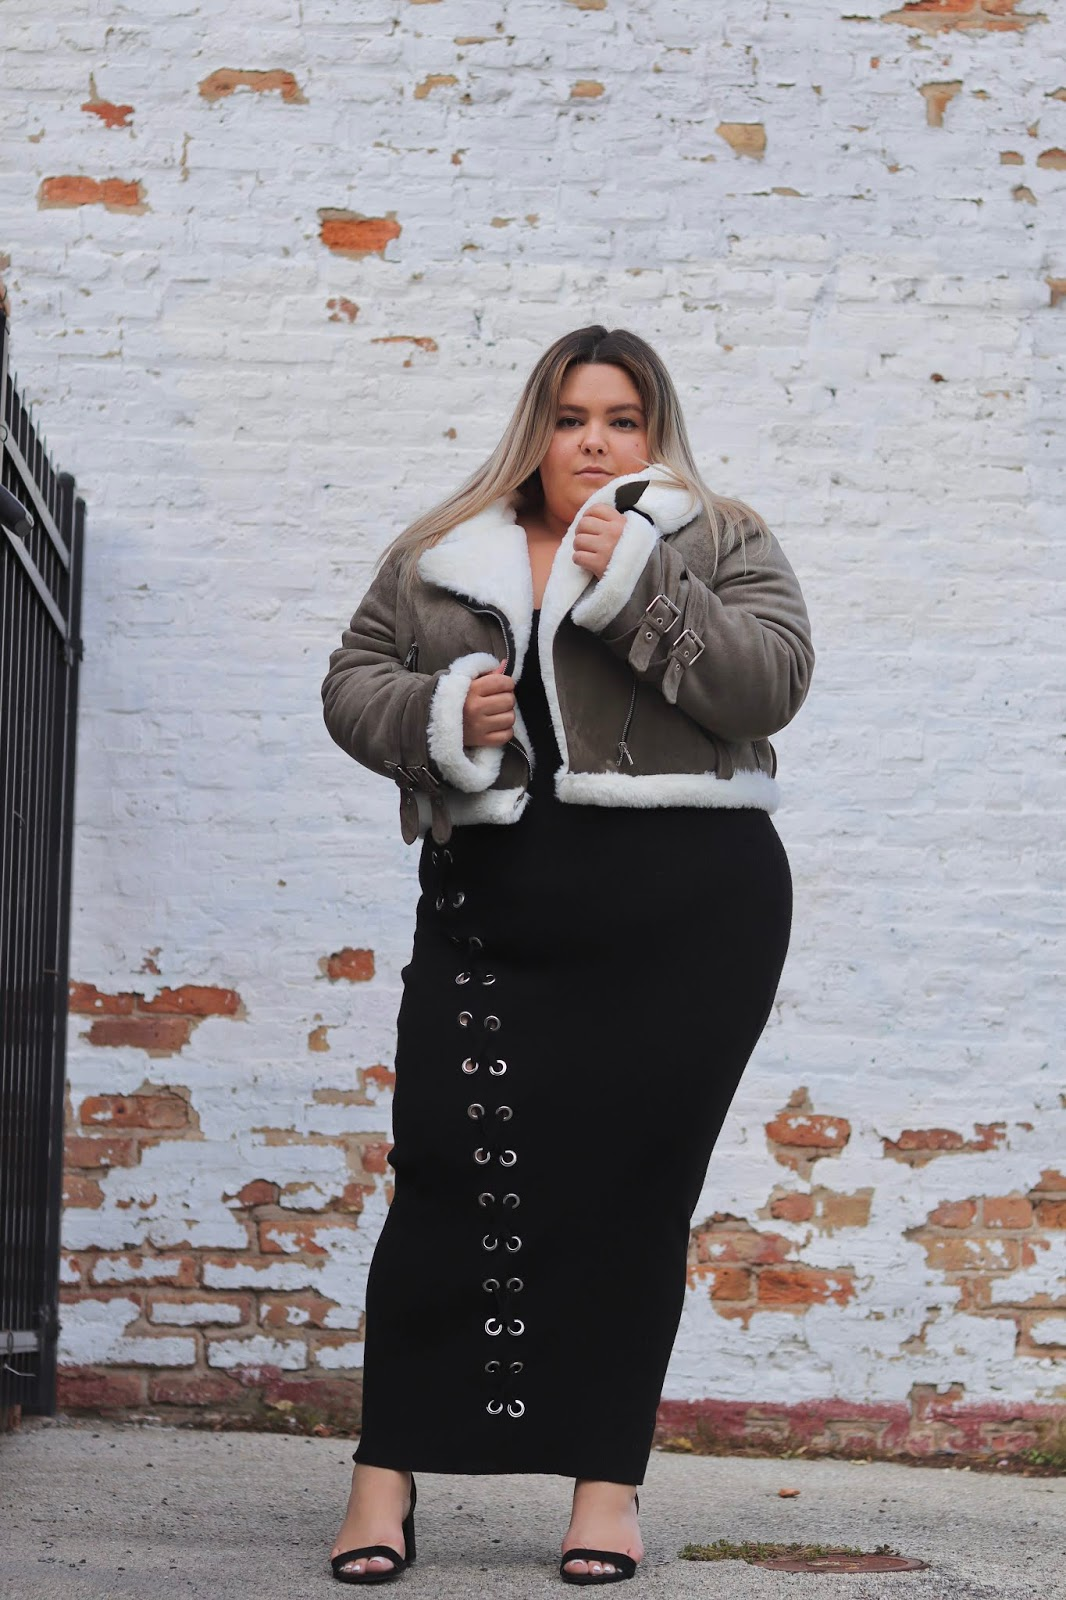 Chicago Plus Size Petite Fashion Blogger, influencer, YouTuber, and model Natalie Craig, of Natalie in the City, reviews Fashion Nova Curve's Faux Shearling Cropped Moto Jacket and sweater maxi dresses.